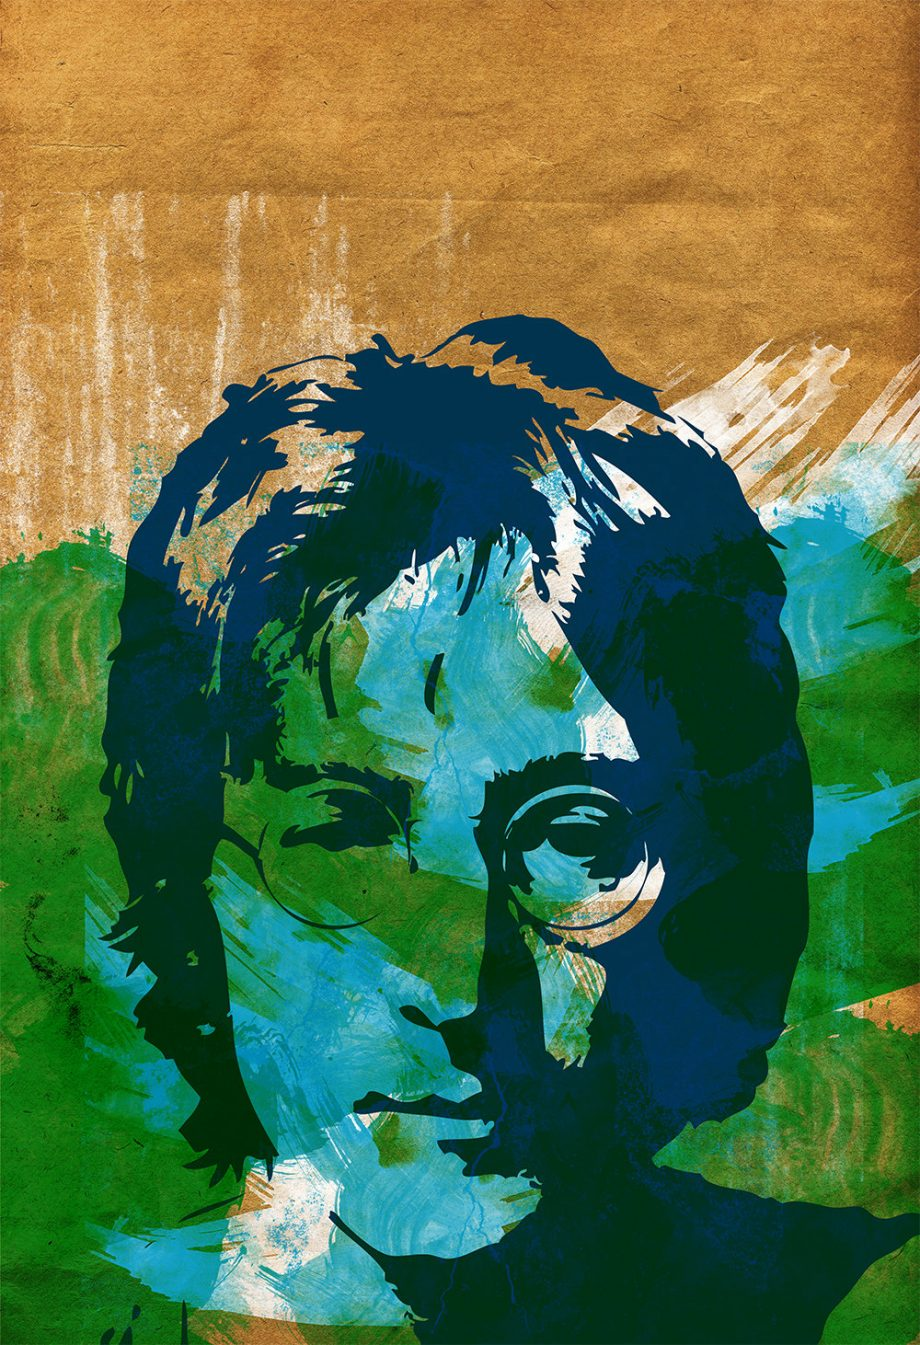 Beatles John Lennon Band Poster - Large Giclee Wall Decor on Cotton Canvas and Satin Photo Paper